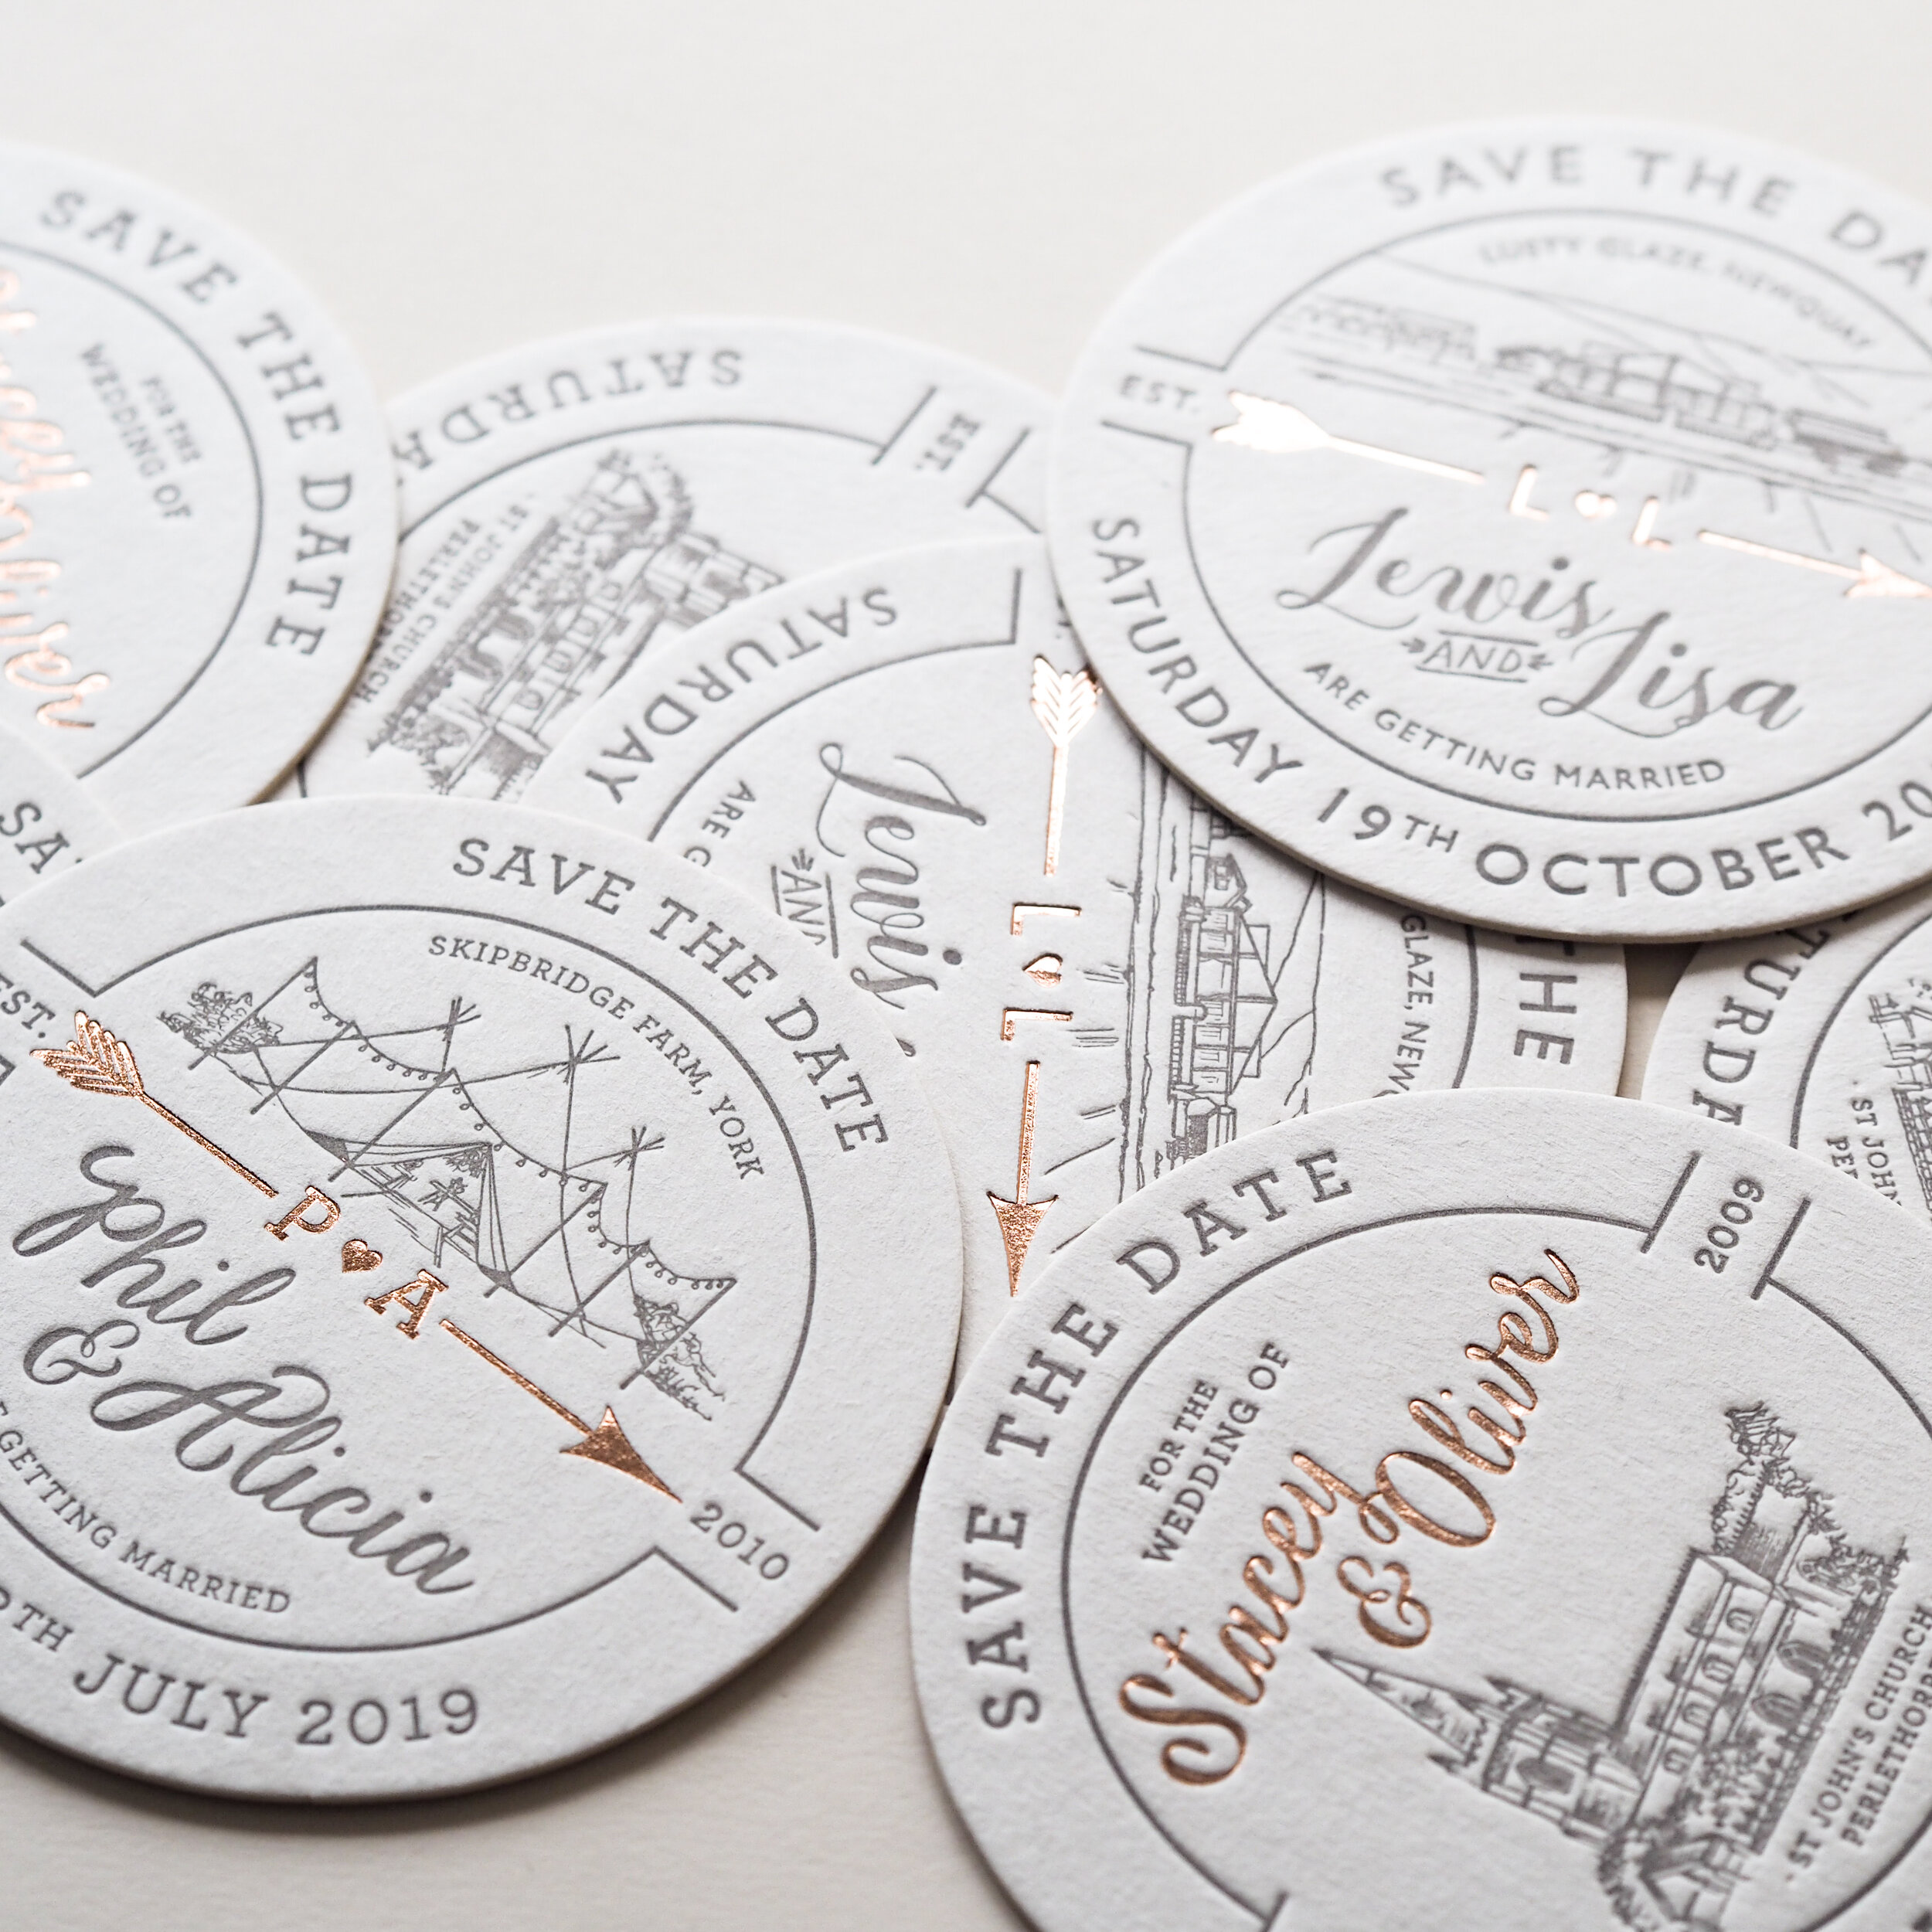 Save-the-date-coasters.jpg